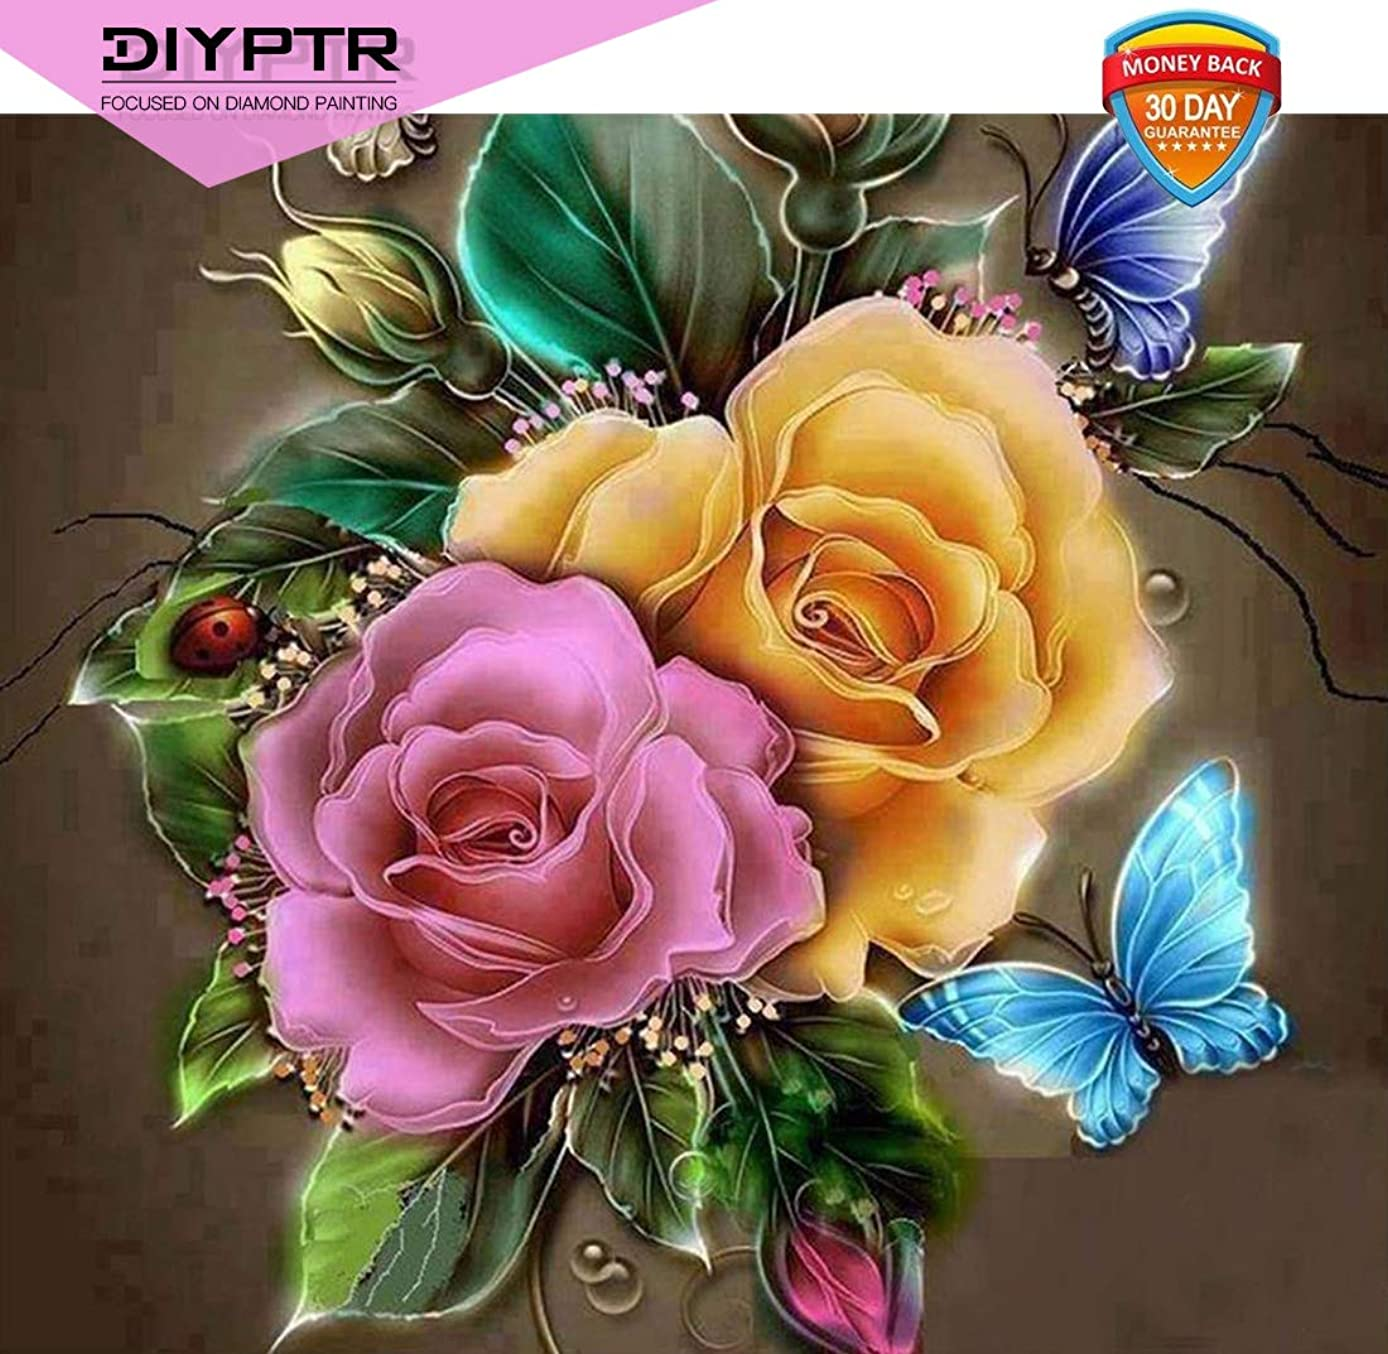 DIY 5D Diamond Painting by Number Kits for Adult, Full Drill Diamond Flower Butterfly Embroidery Dotz Kit Arts Craft Home Living Room Wall Decor, 11.8 x 15.8 inch